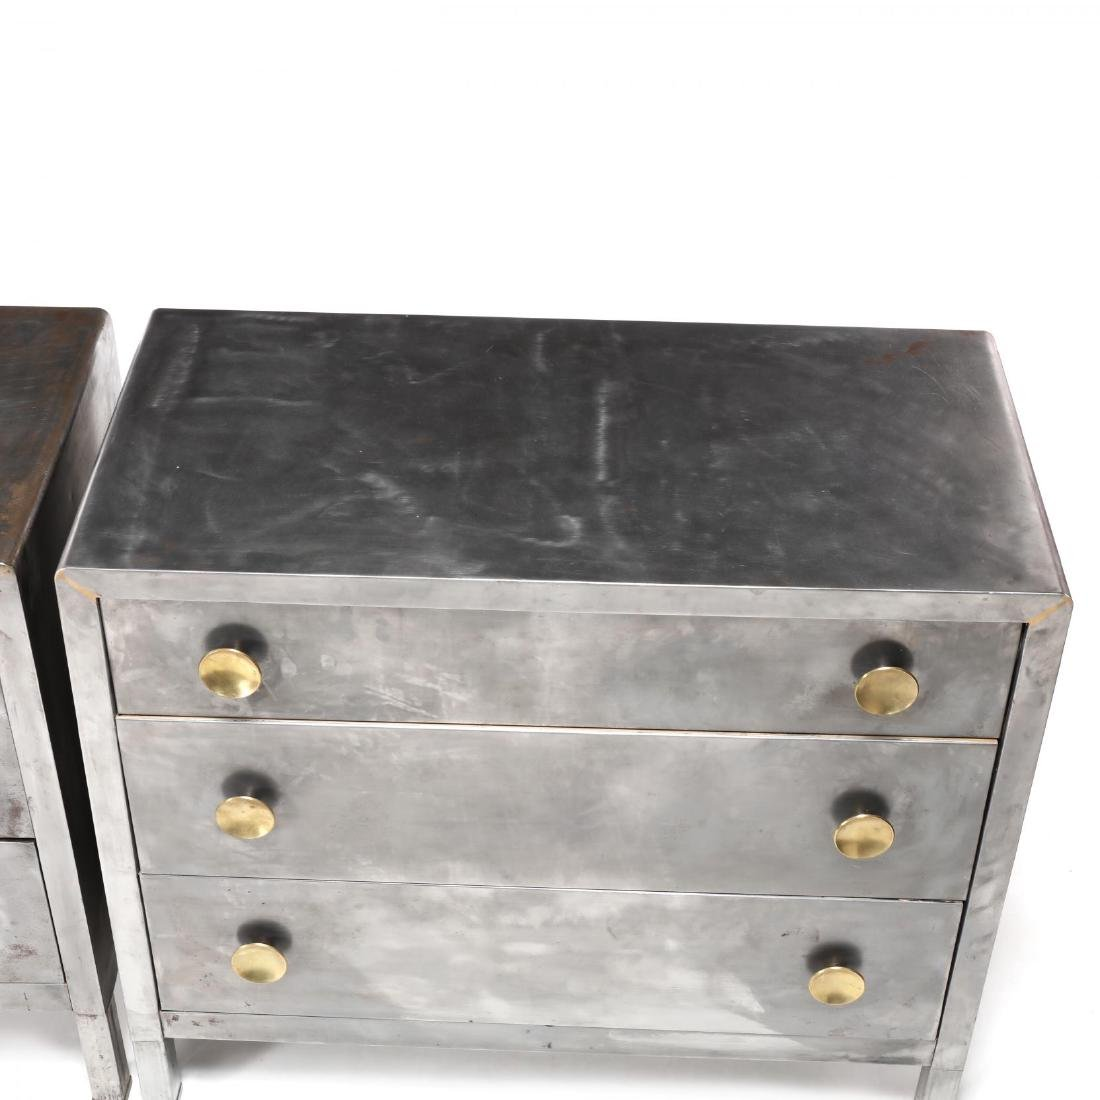 Norman Bel Geddes, Pair of Industrial Metal Chests - 2